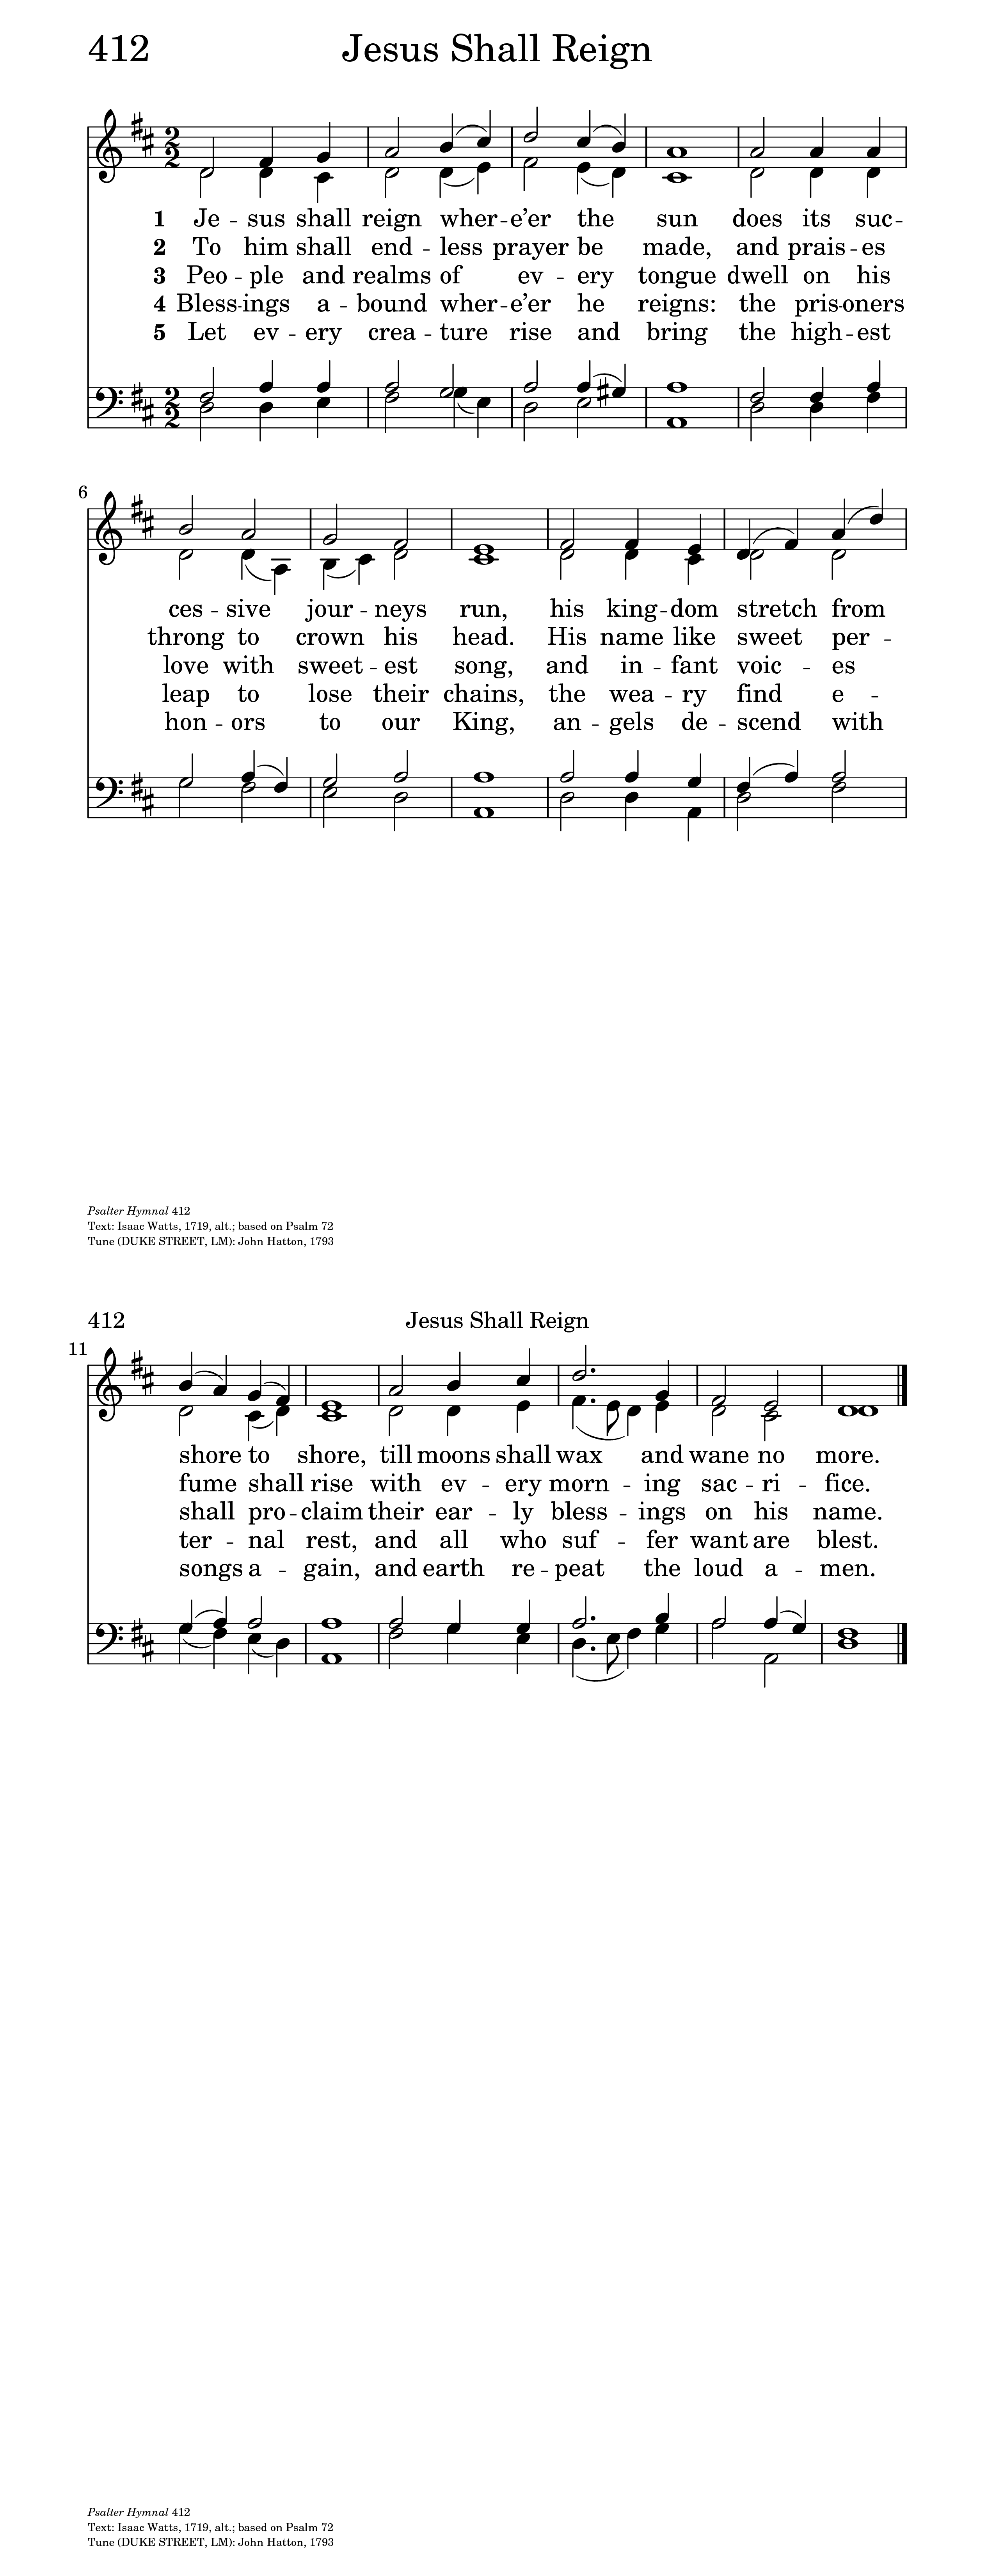 Jesus shall reign whereer the sun hymnary general settings hexwebz Images